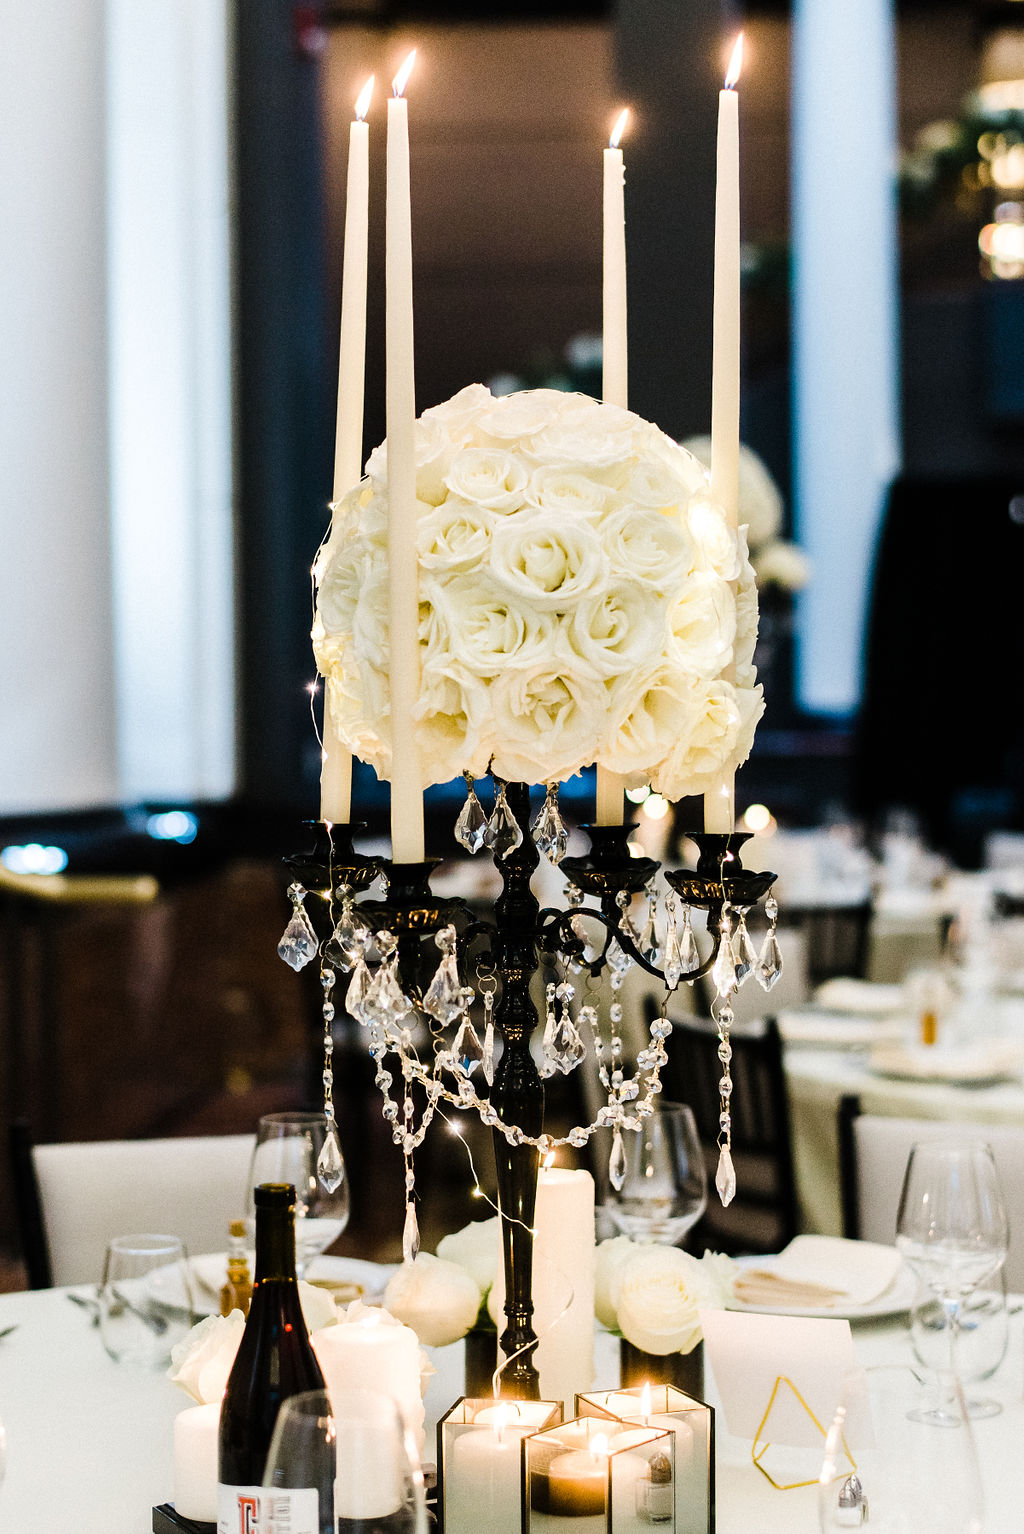 Floral centerpieces designed by Ruth L. White roses on a black candelabra with ivory candle stick and hanging jewels - Pearl Weddings & Events